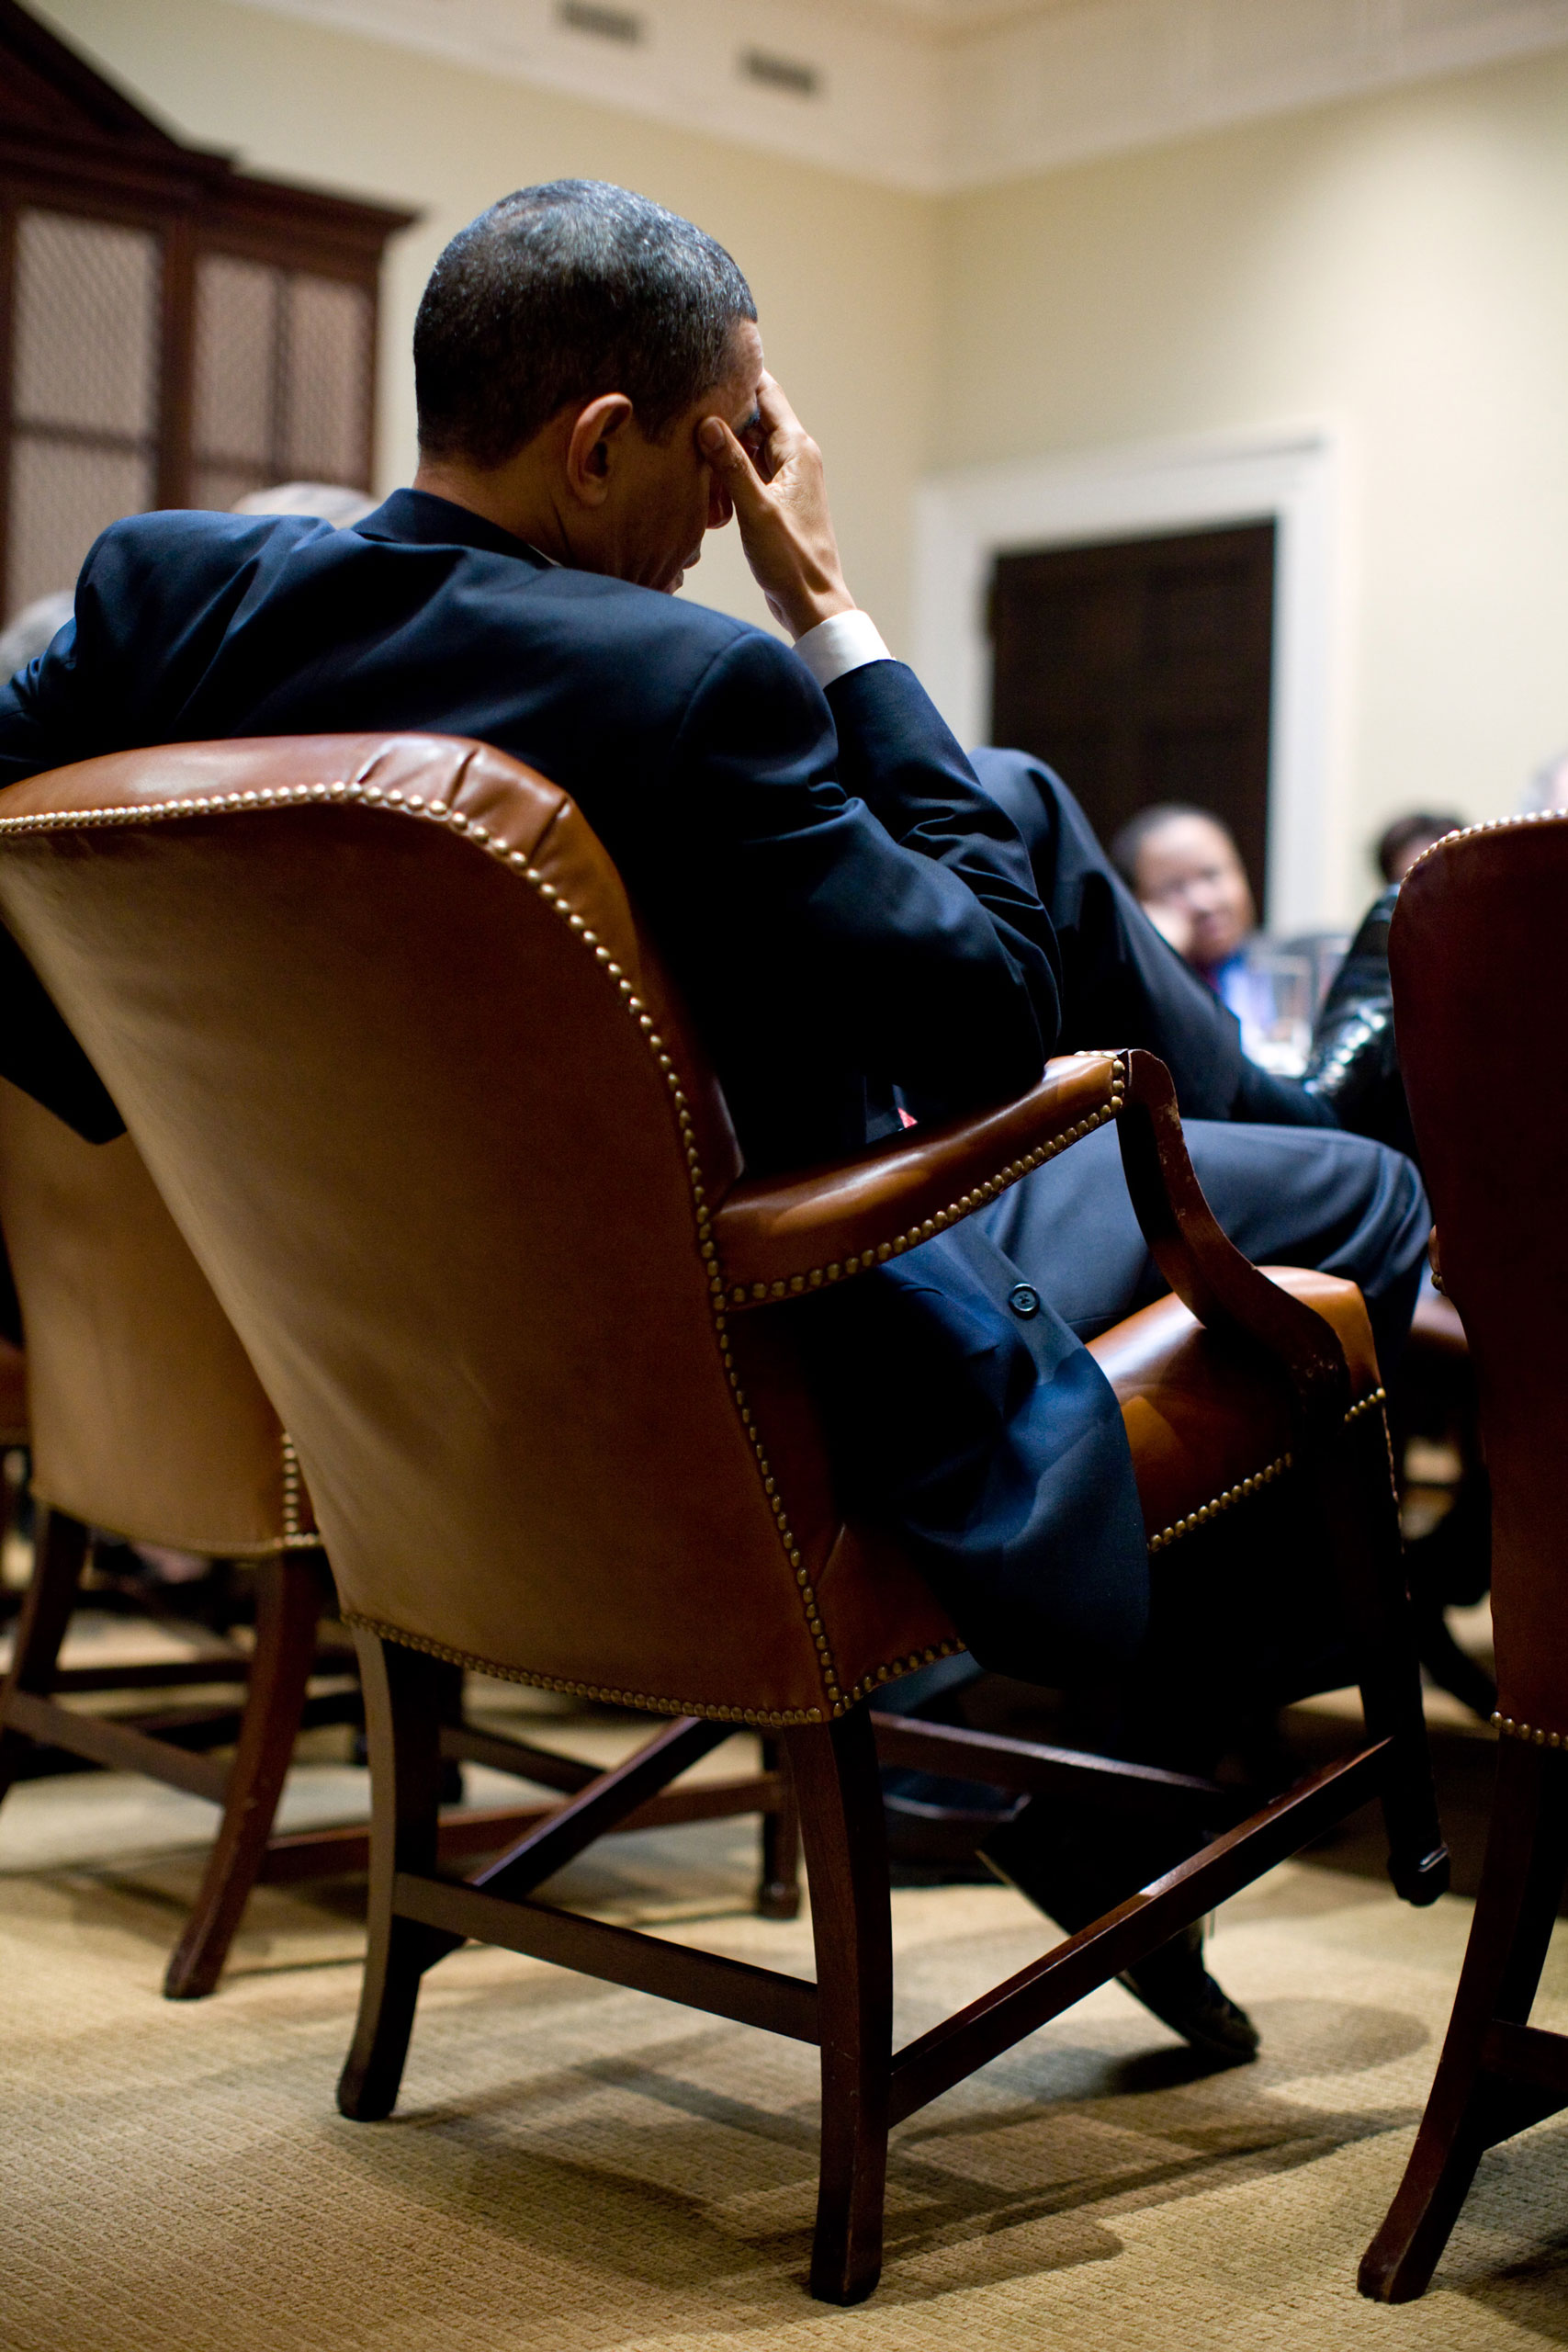 """This was a planning meeting in the Roosevelt Room of the White House. The President was leaning back in his chair, taking in the discussion,"""" Dec. 22, 2009."""